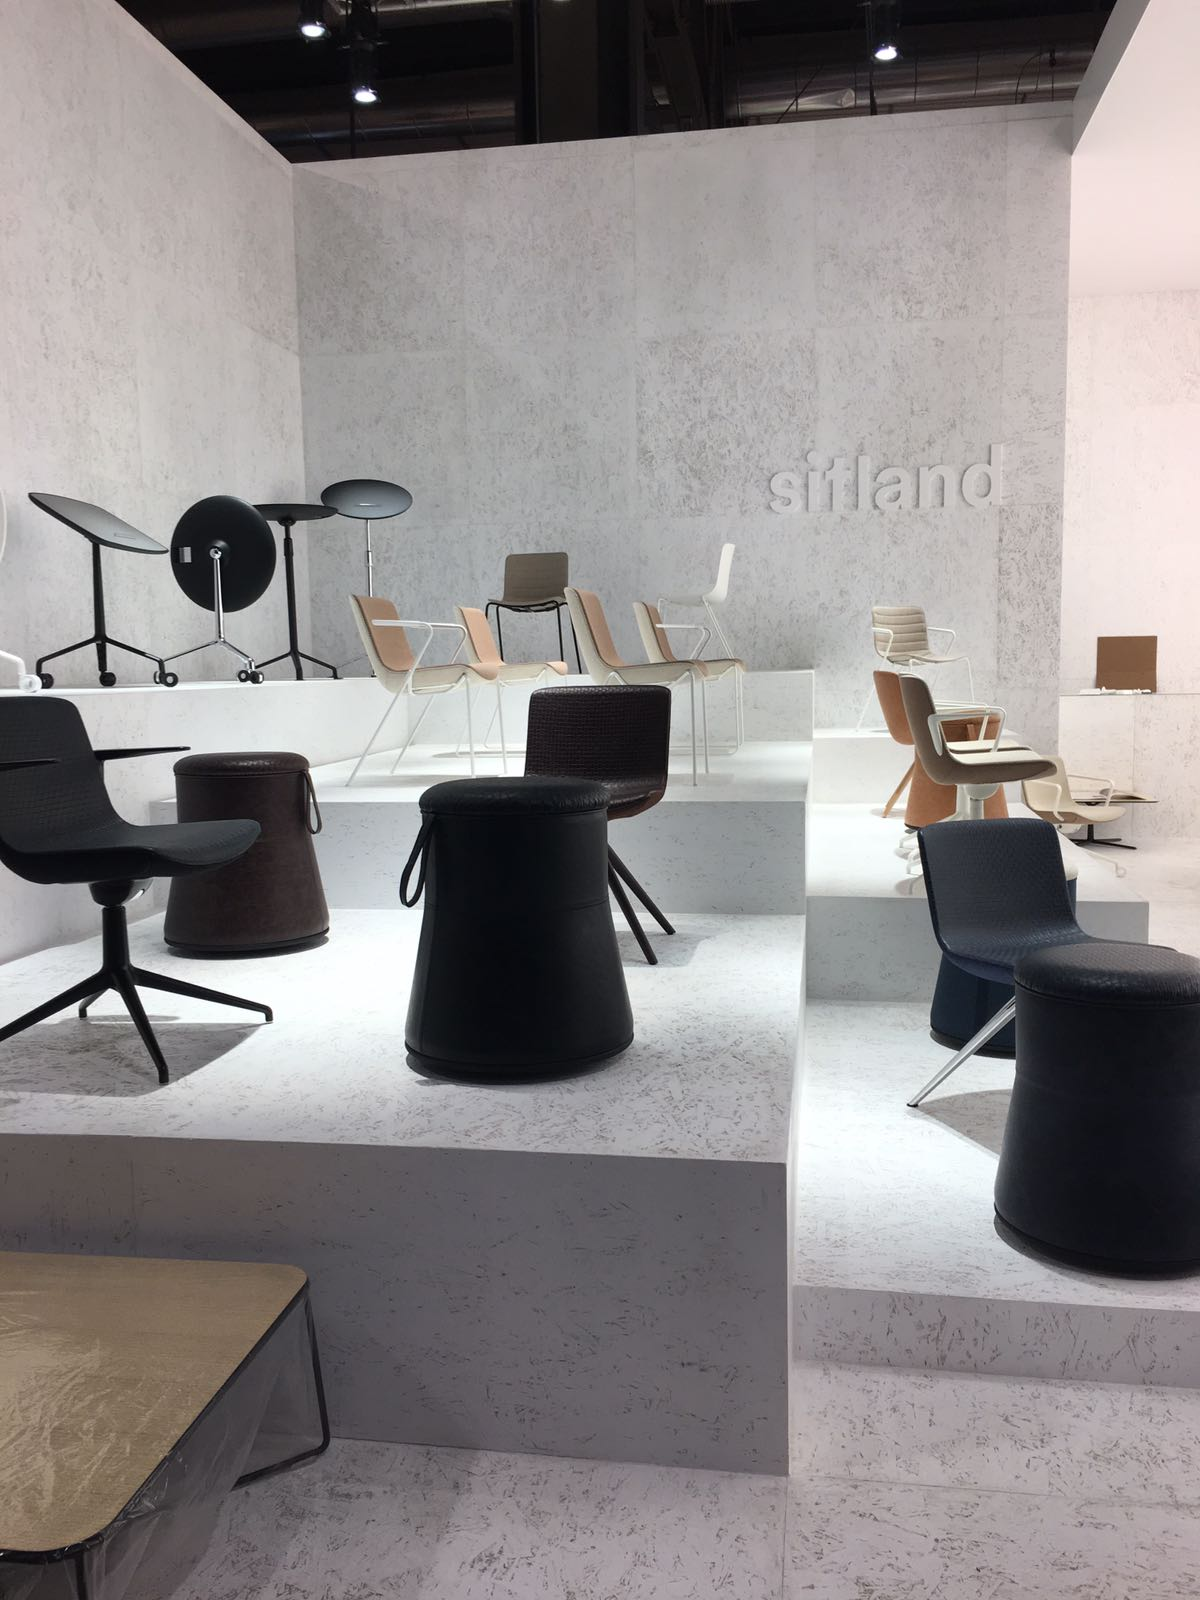 Stands You Must See at Salone del Mobile 2017 Tomorrow salone del mobile 2017 Stands You Must See at Salone del Mobile 2017 Tomorrow Stands You Must See at Salone del Mobile 2017 Tomorrow 11